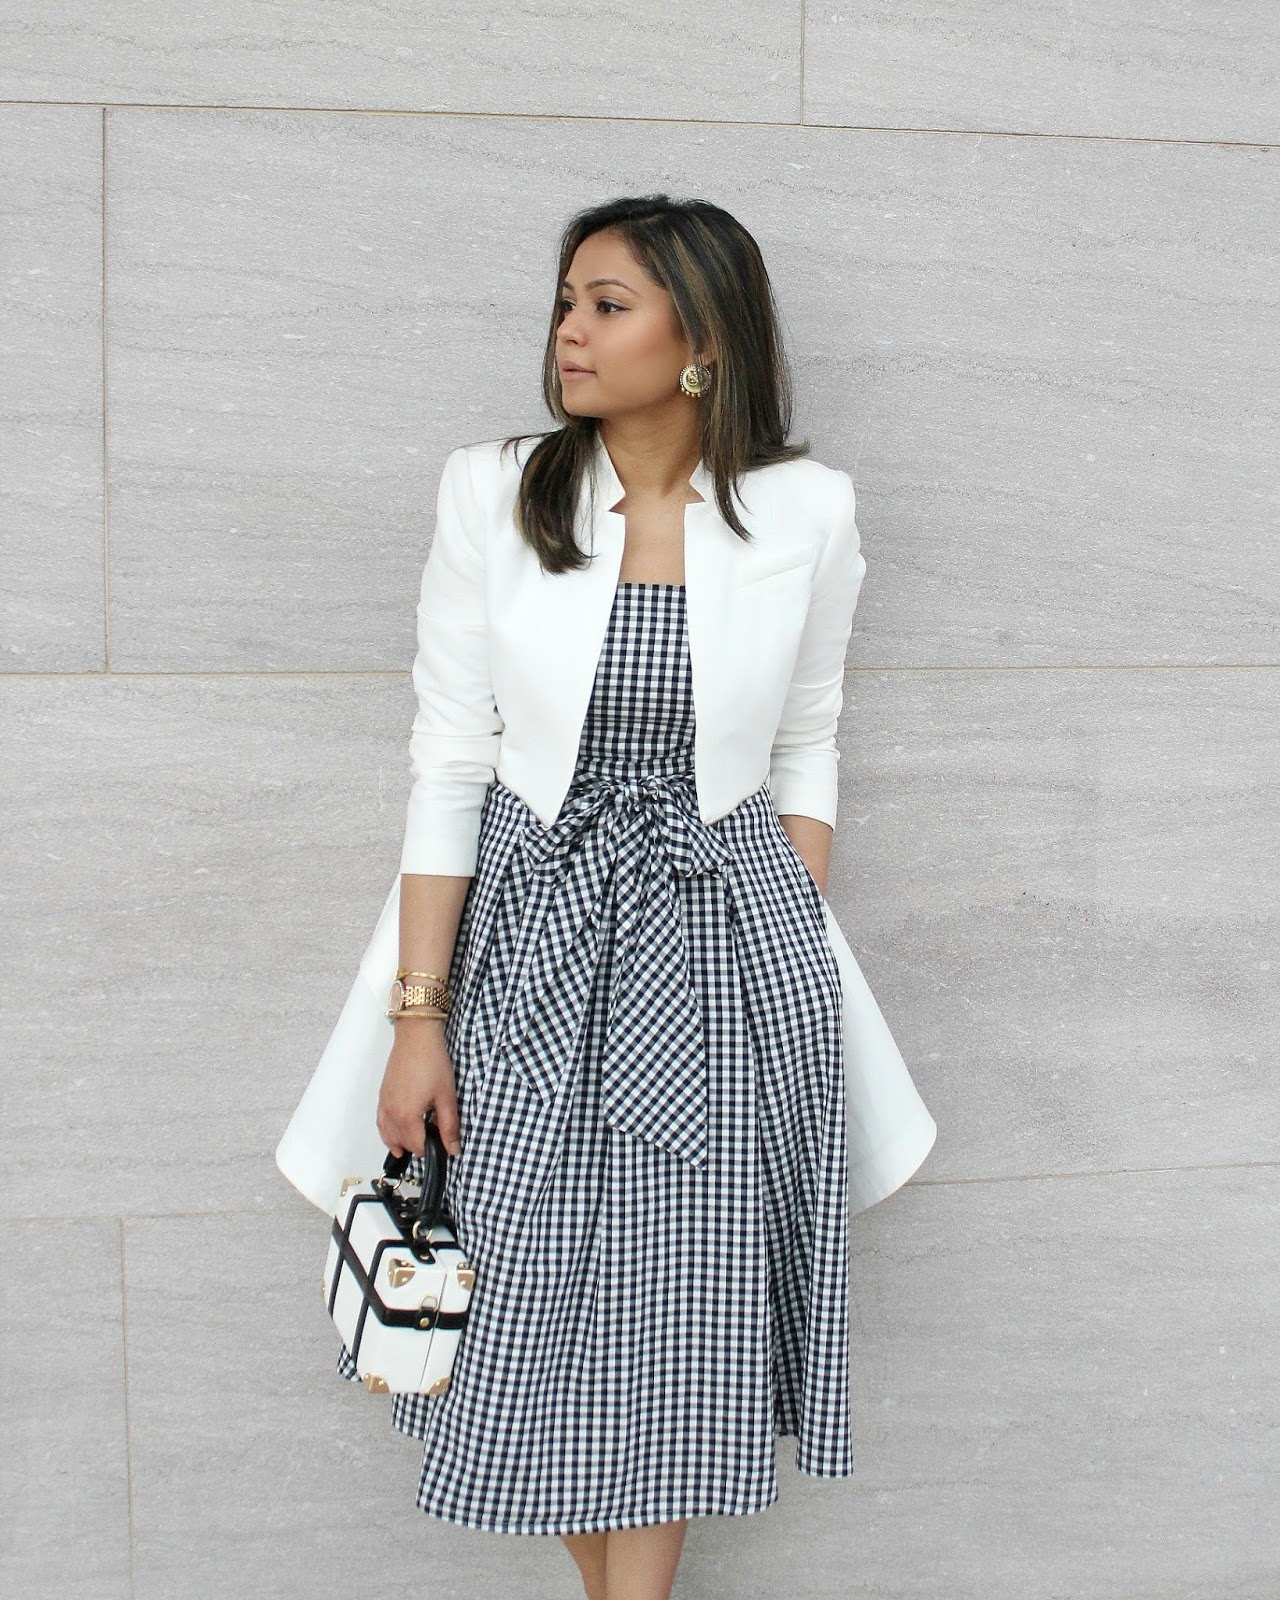 how to wear gingham without looking like a tablecloth- picnic blanket- grown up gingham- spring trend- summer fashion- new york and company dress- ny&co gingham dress- fashion blogger-